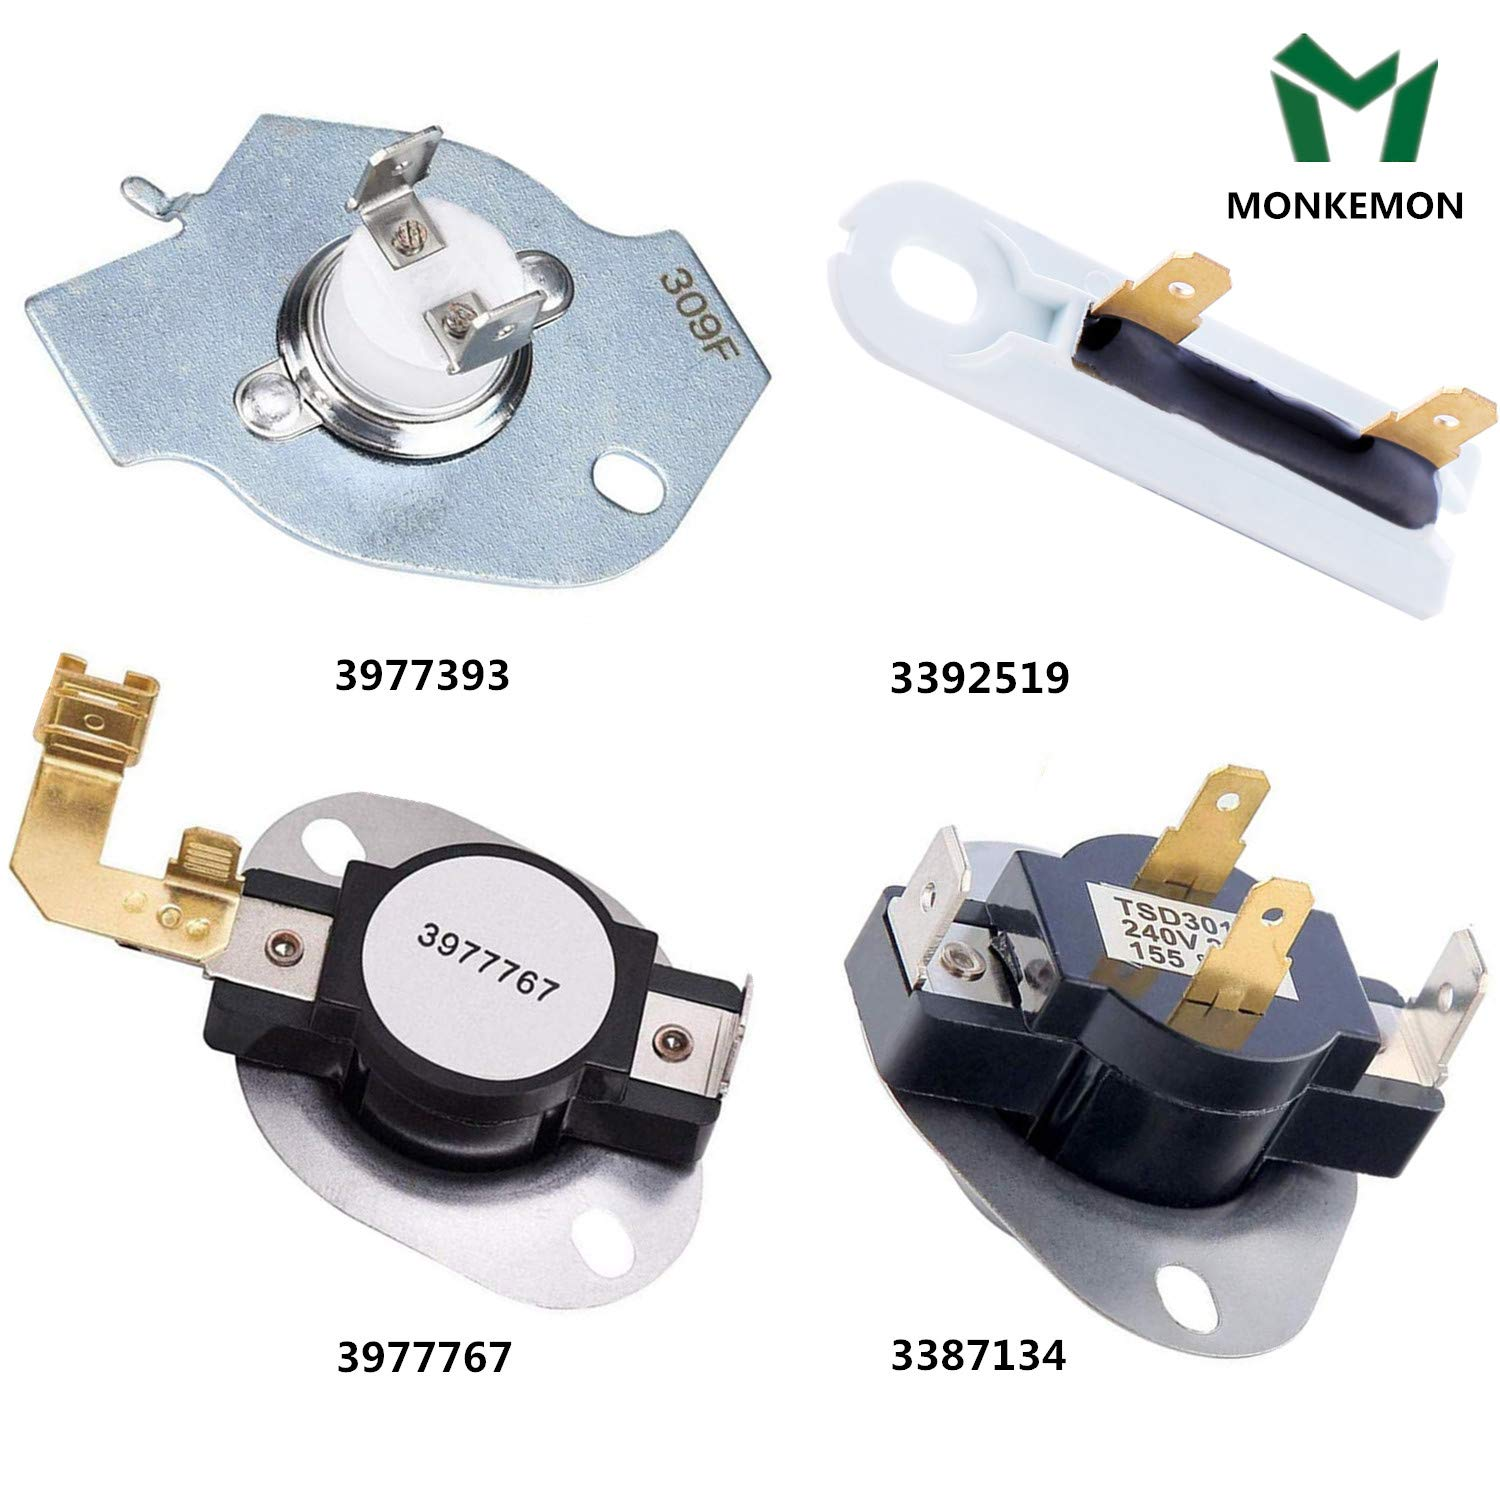 3387134 High-Limit Thermostat 3392519 Dryer Thermal Fuse 3977767 Dryer Thermostat 3977393 Thermal Fuse for Whirlpool Kenmore Maytag KitchenAid Dryer Replaces Parts Replaces Parts 3399693 WP3977767VP